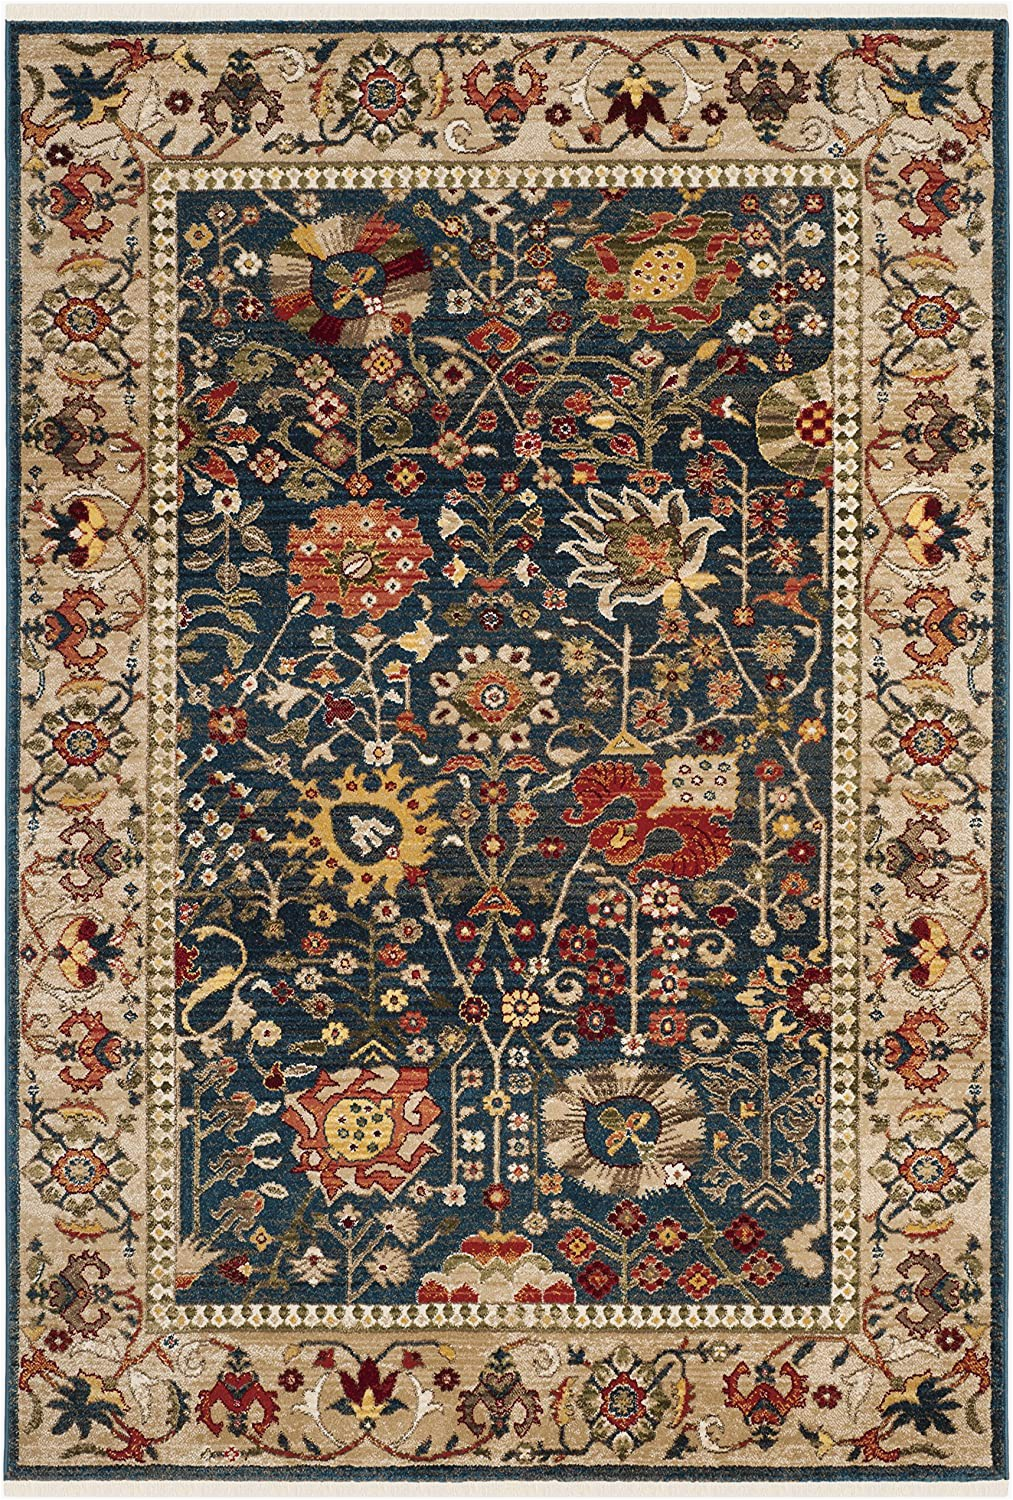 Area Rugs Larger Than 9×12 Safavieh Kashan Collection Ksn303g Traditional Blue and Tan area Rug 9 X 12